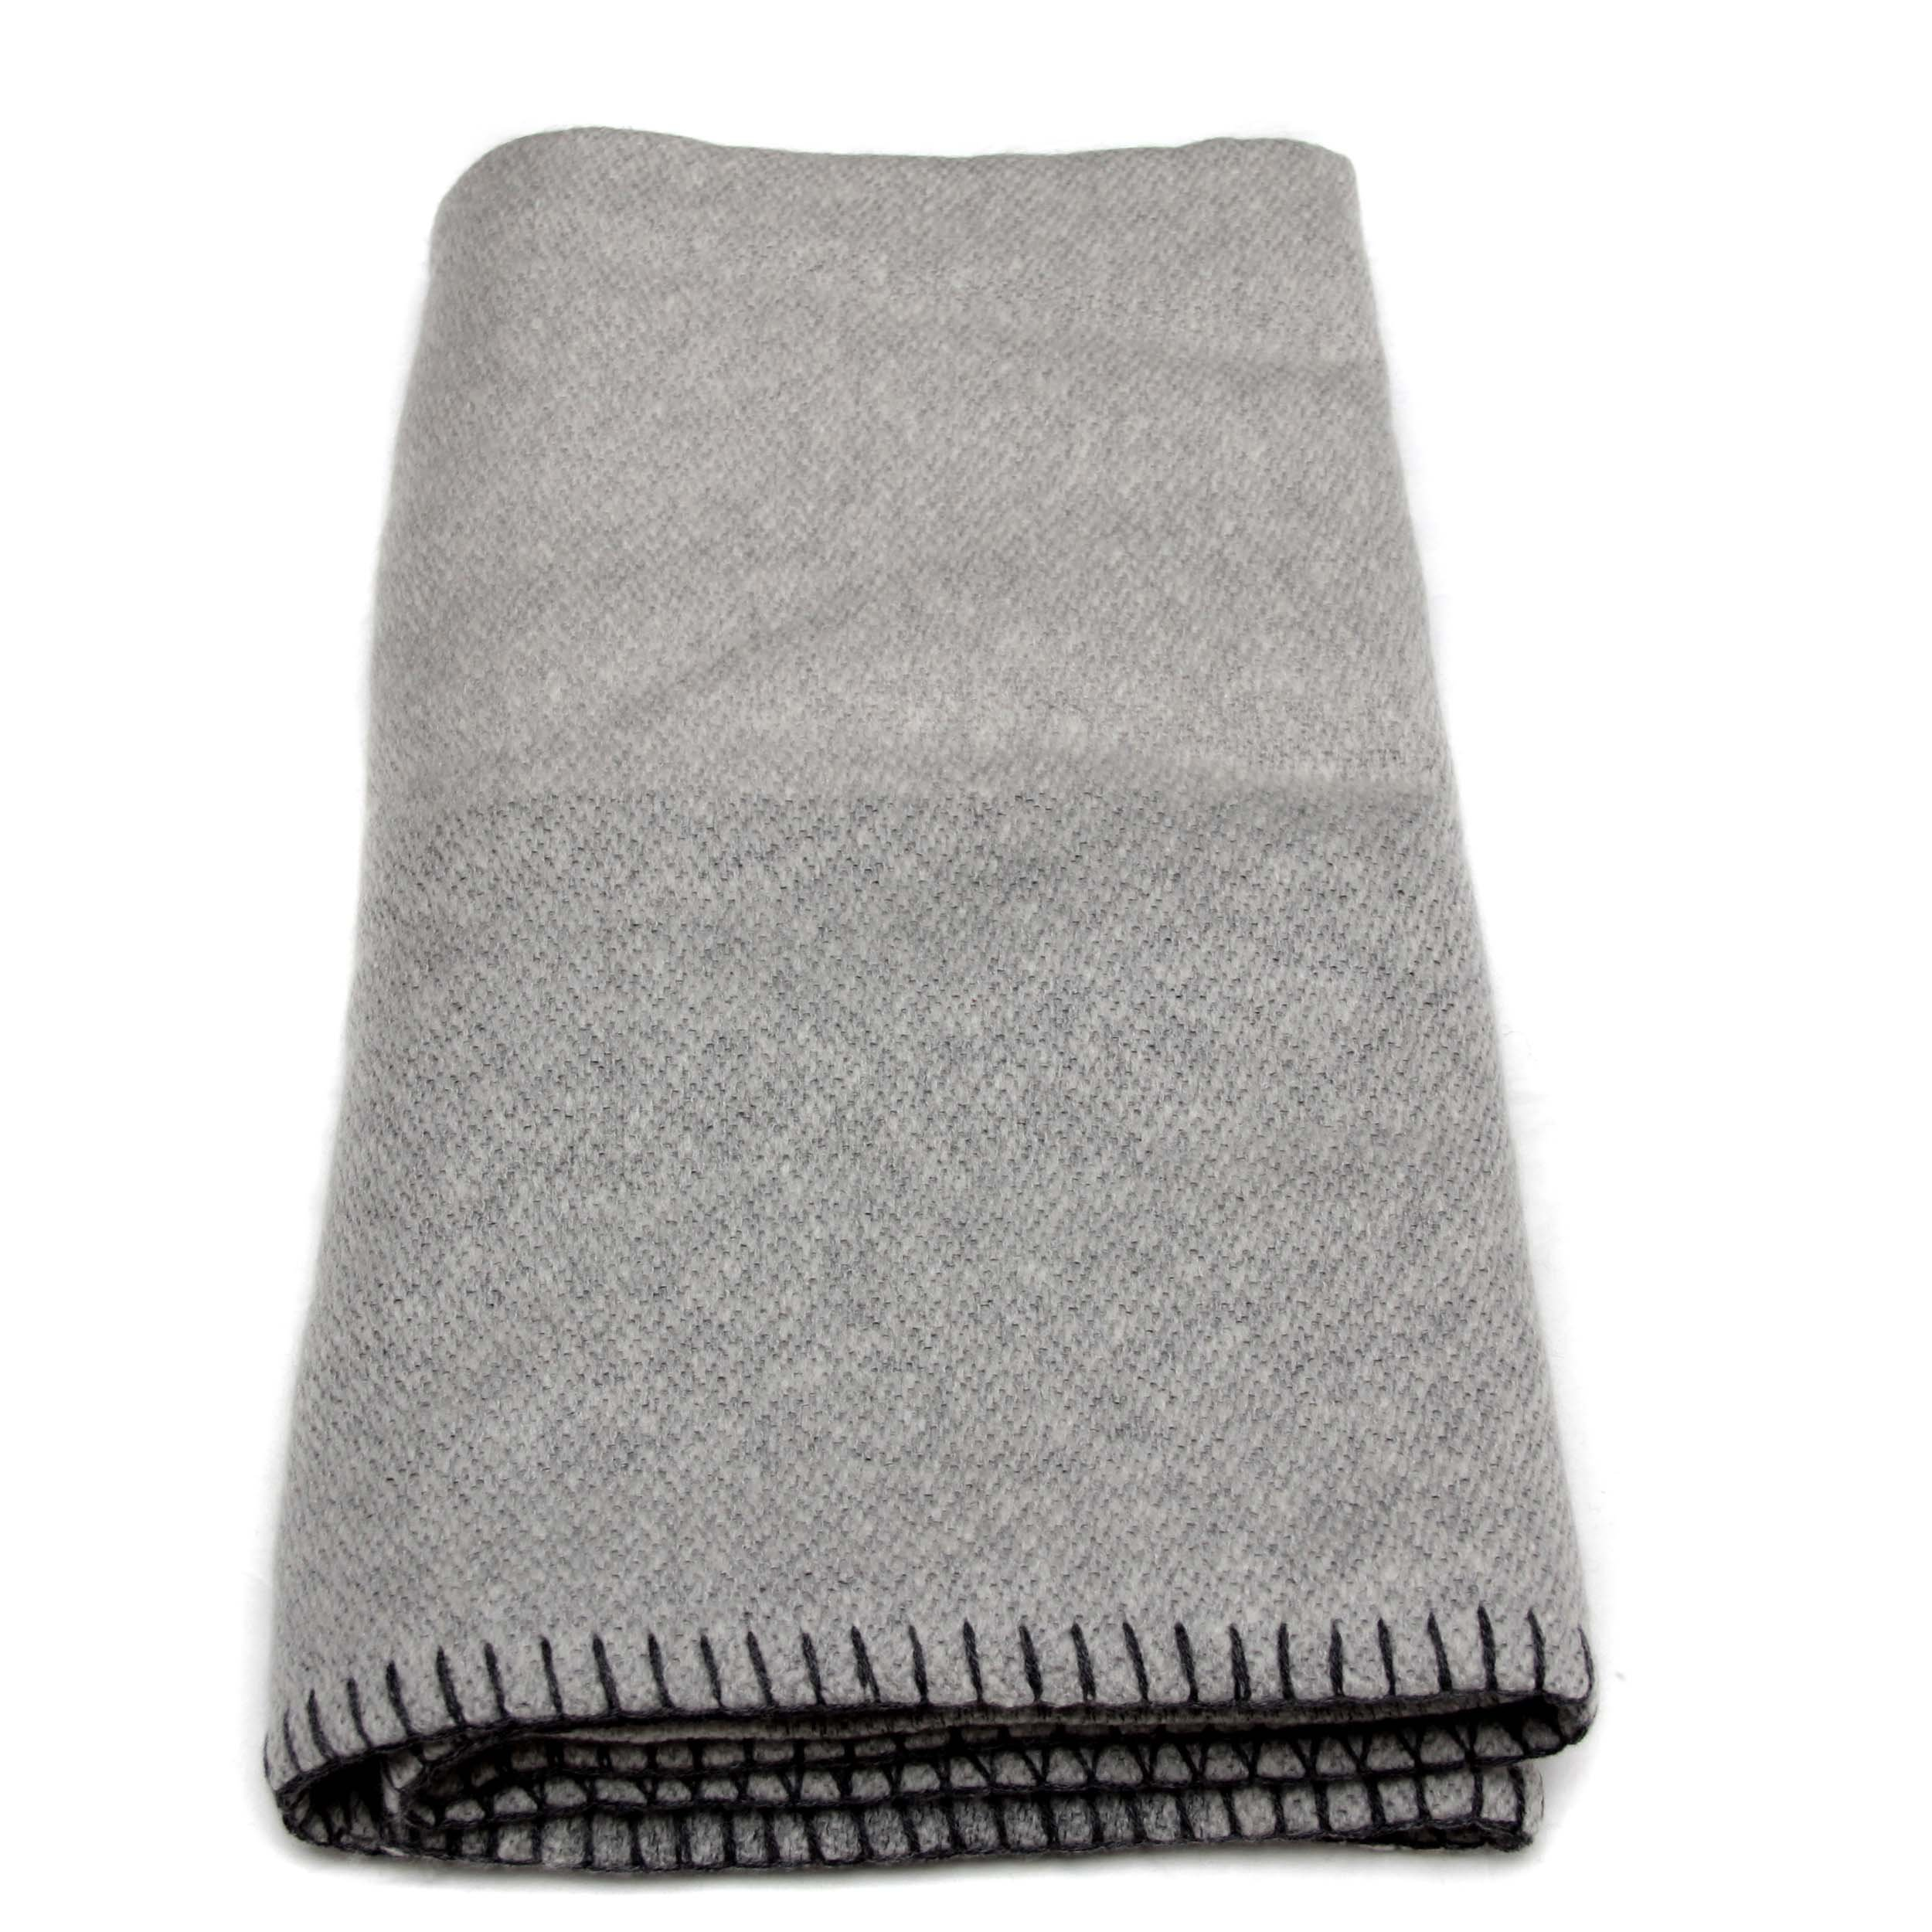 100% Cashmere Blanket 8 PLY Mongolian Cashmere , Thick Cashmere Blanket, Luxury Winter Cashmere Blanket 26/2 + 5.1 (8 PLY)Yarn Composition, Grey with Black Border